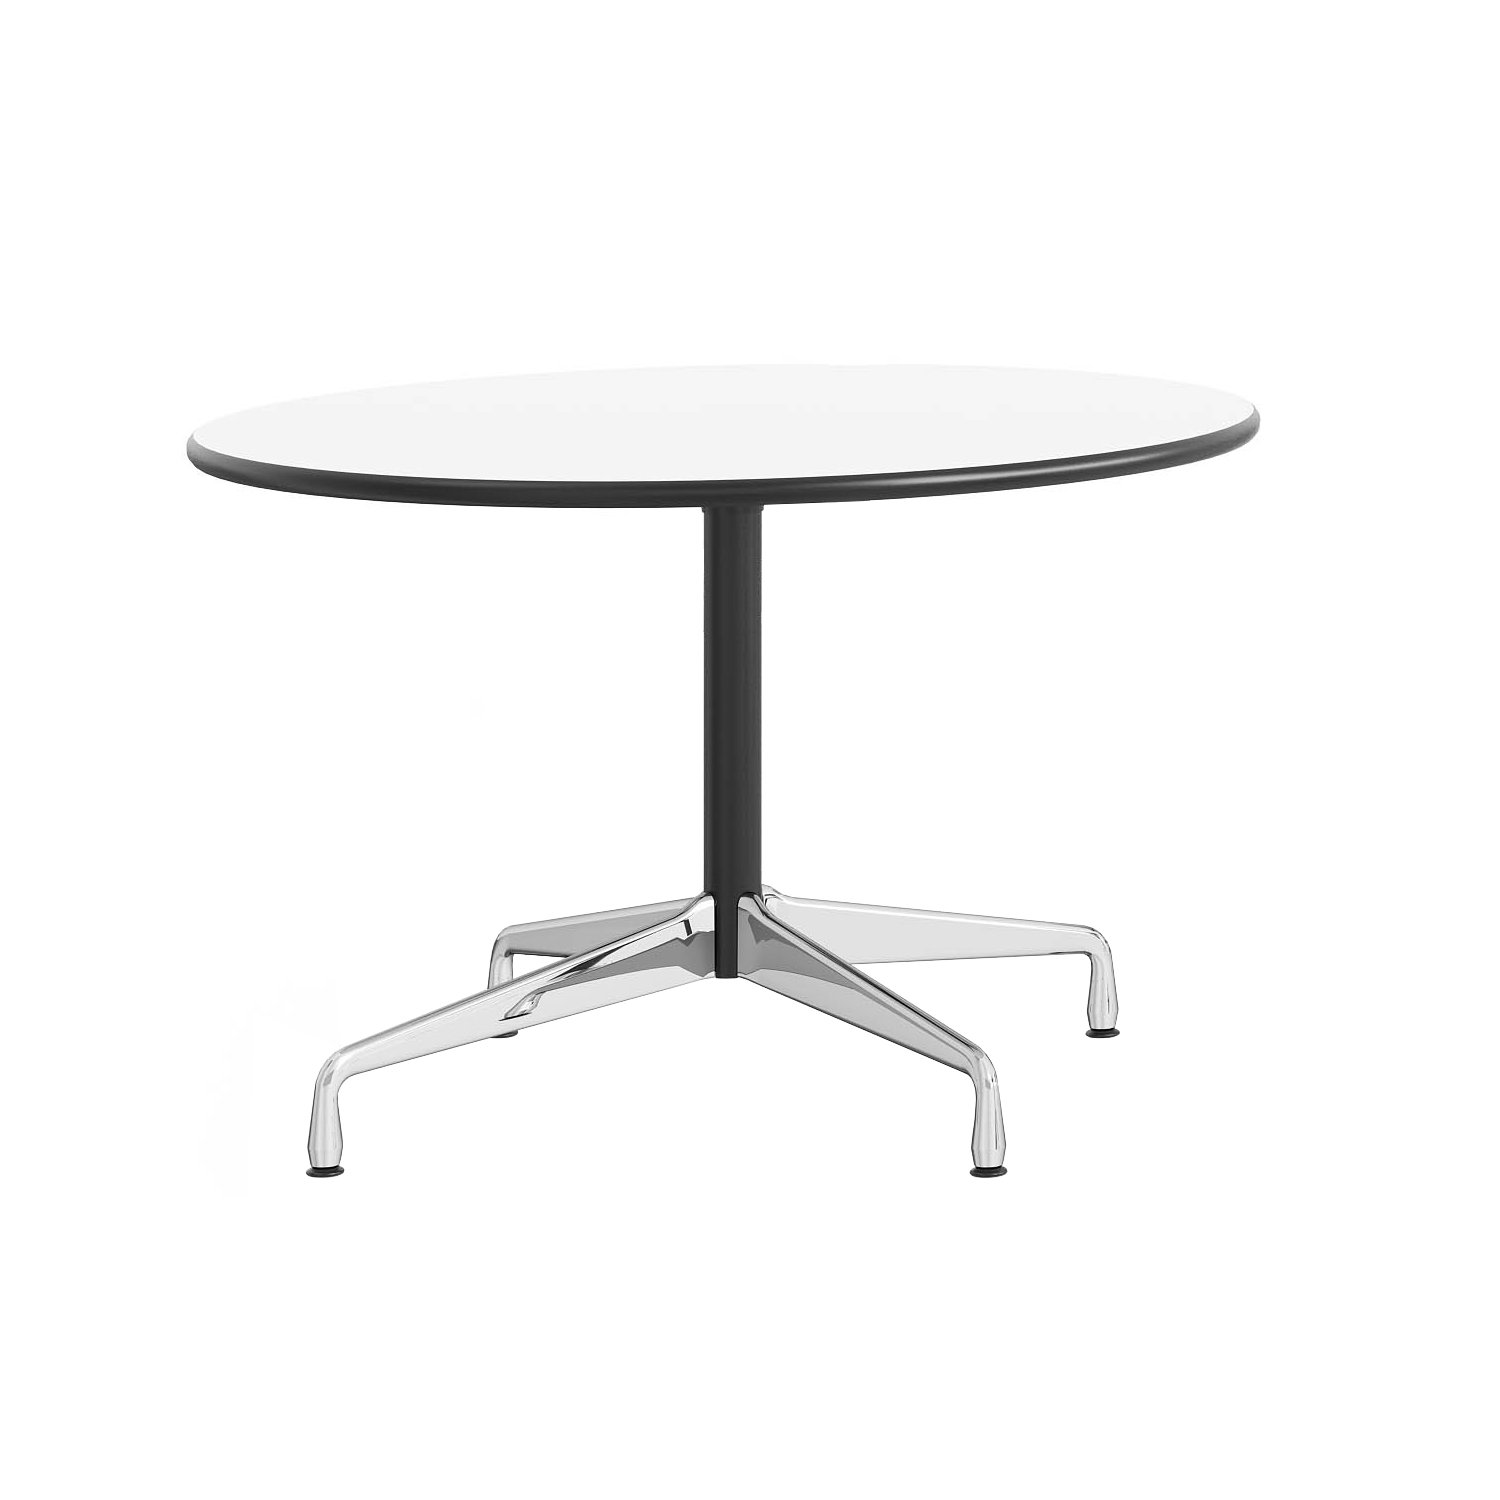 Eames Vitra Table Vitra Eames Segmented Table Rund Shop I Design Bestseller De